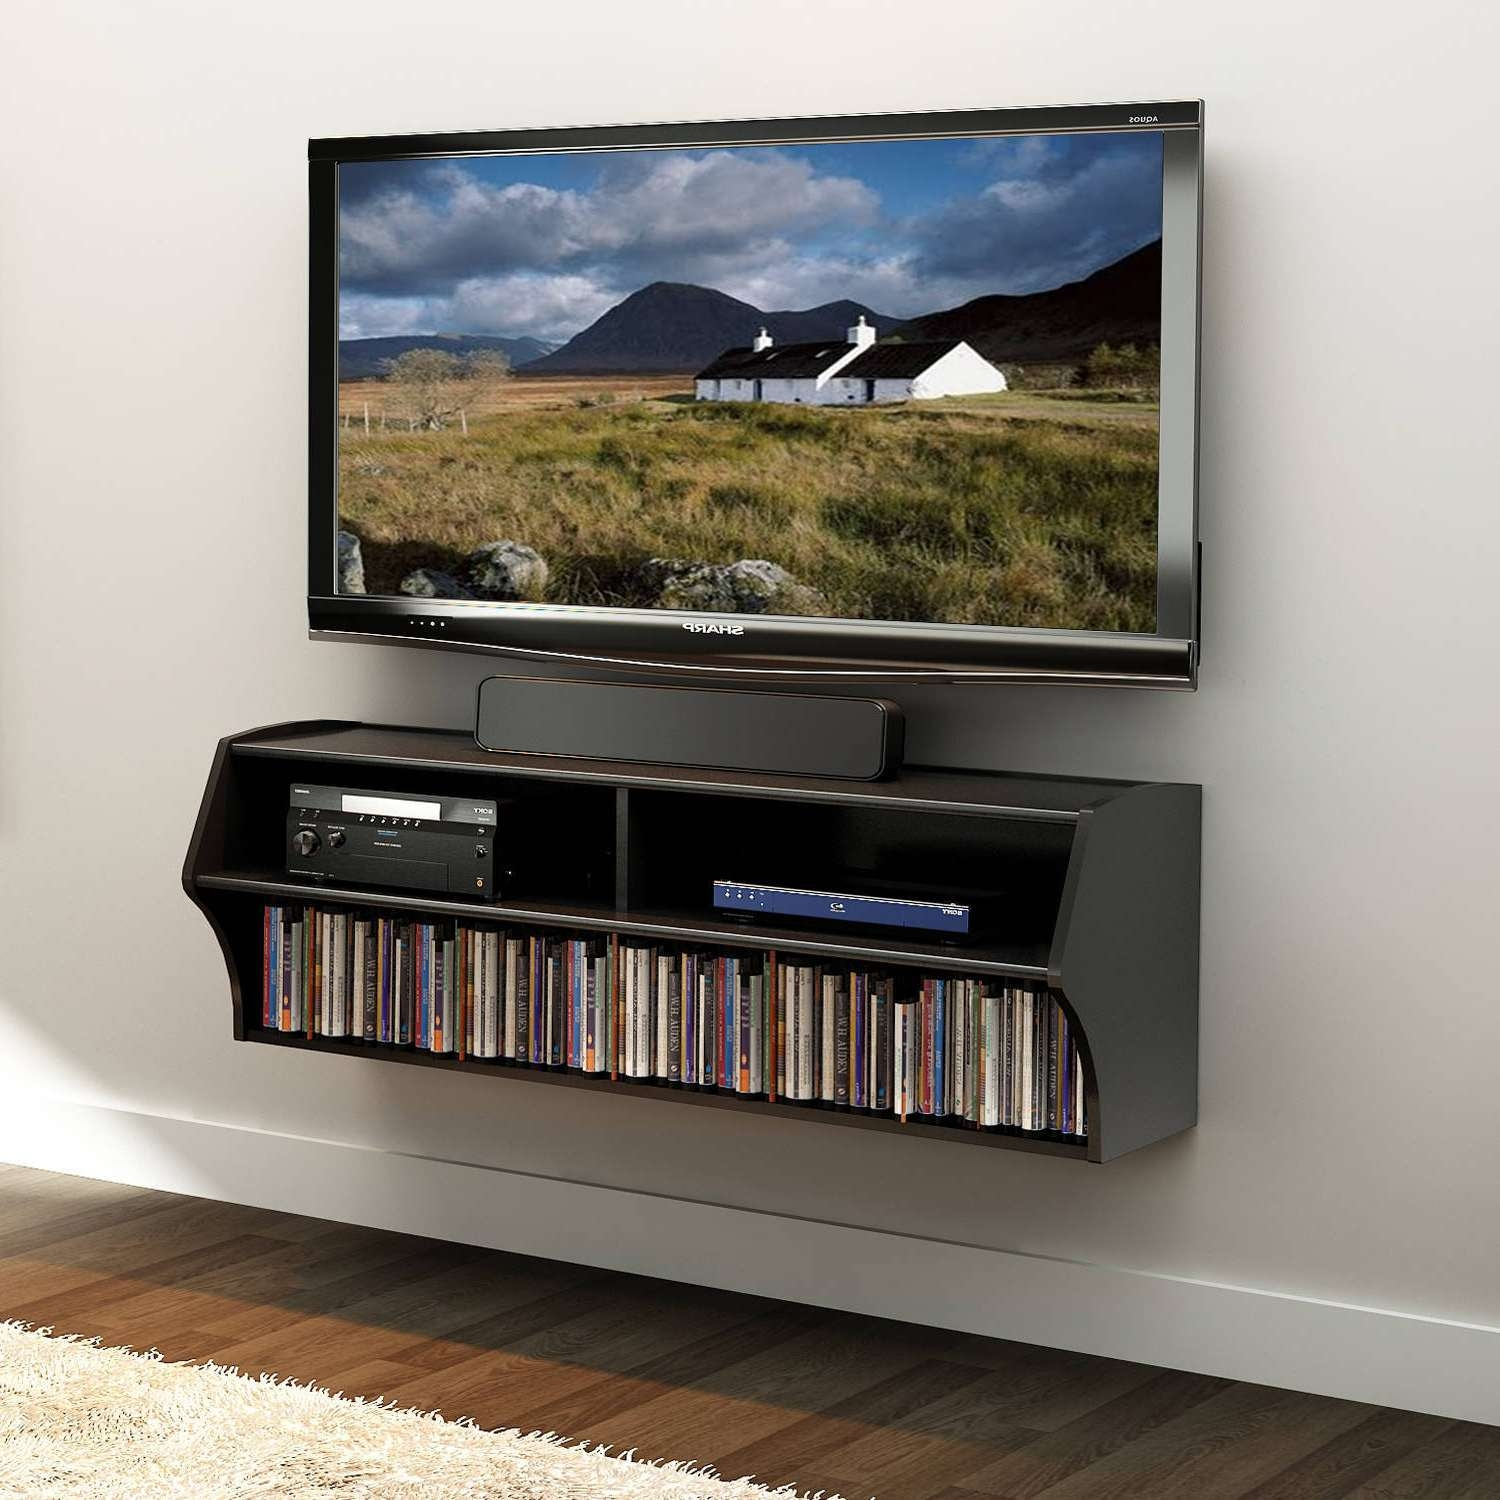 Tv : Tv Units Wonderful 24 Inch Wide Tv Stands High Style Low Intended For 24 Inch Led Tv Stands (View 12 of 15)